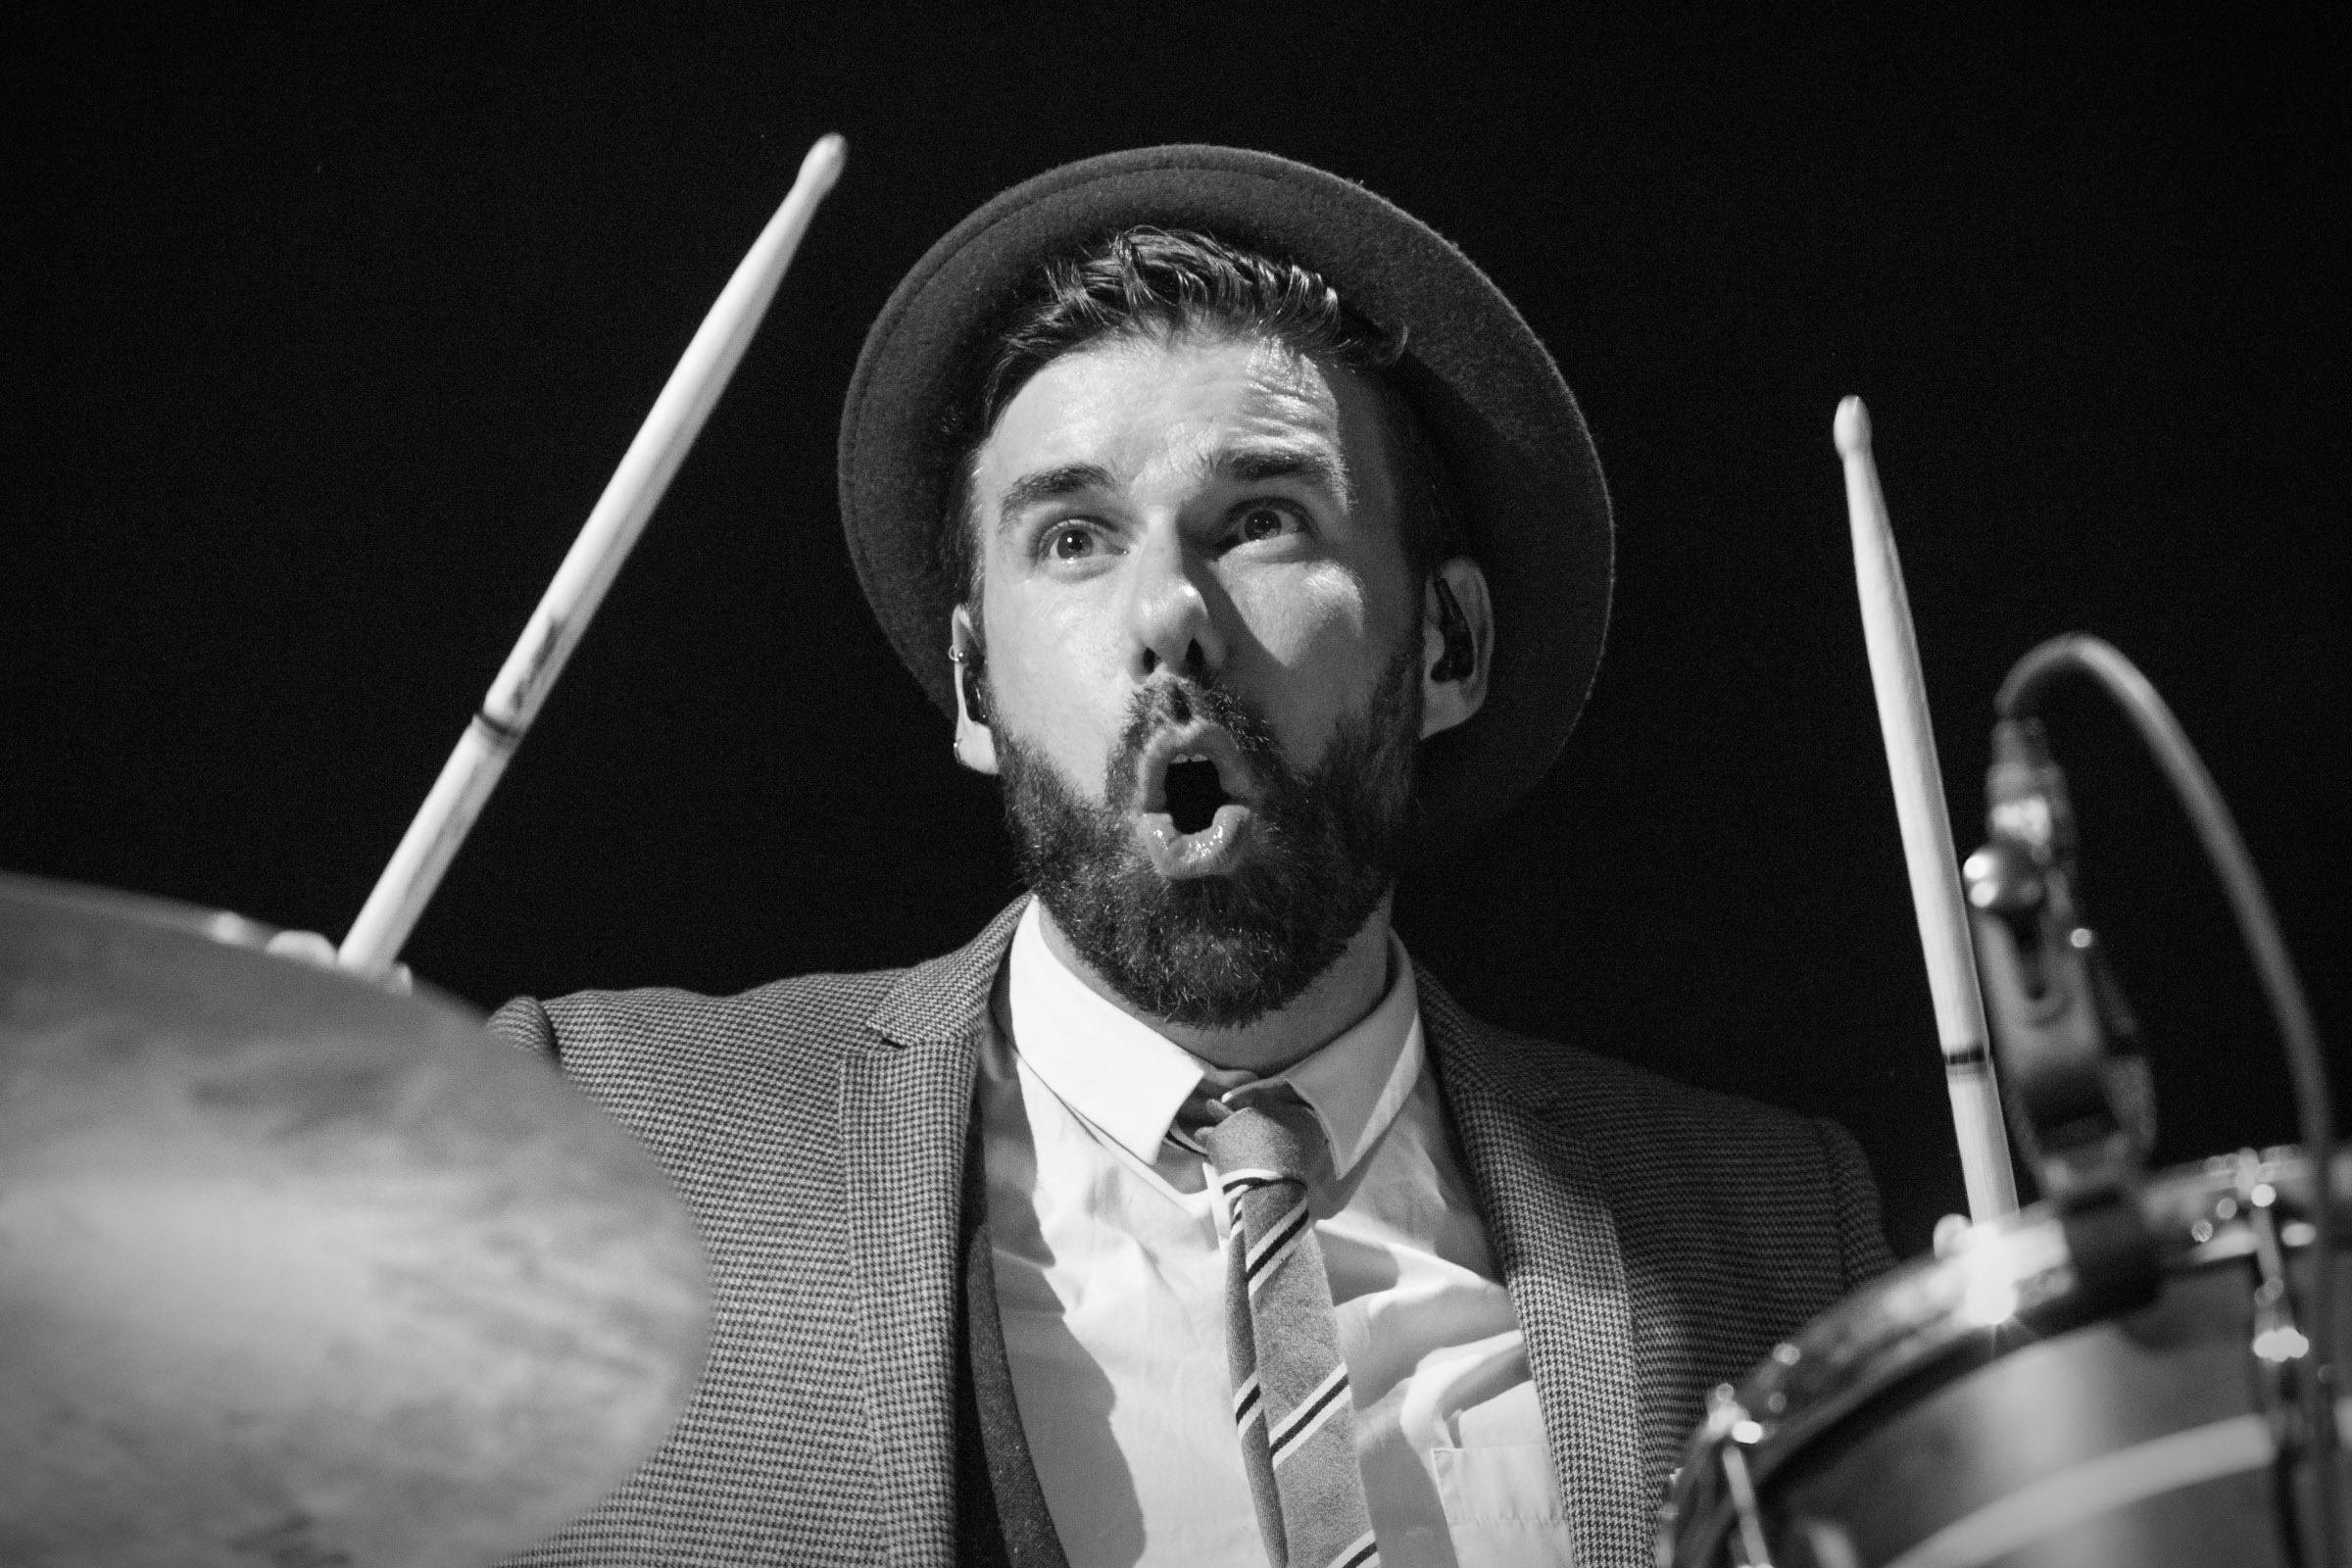 Gareth Gilkeson of Rend Collective